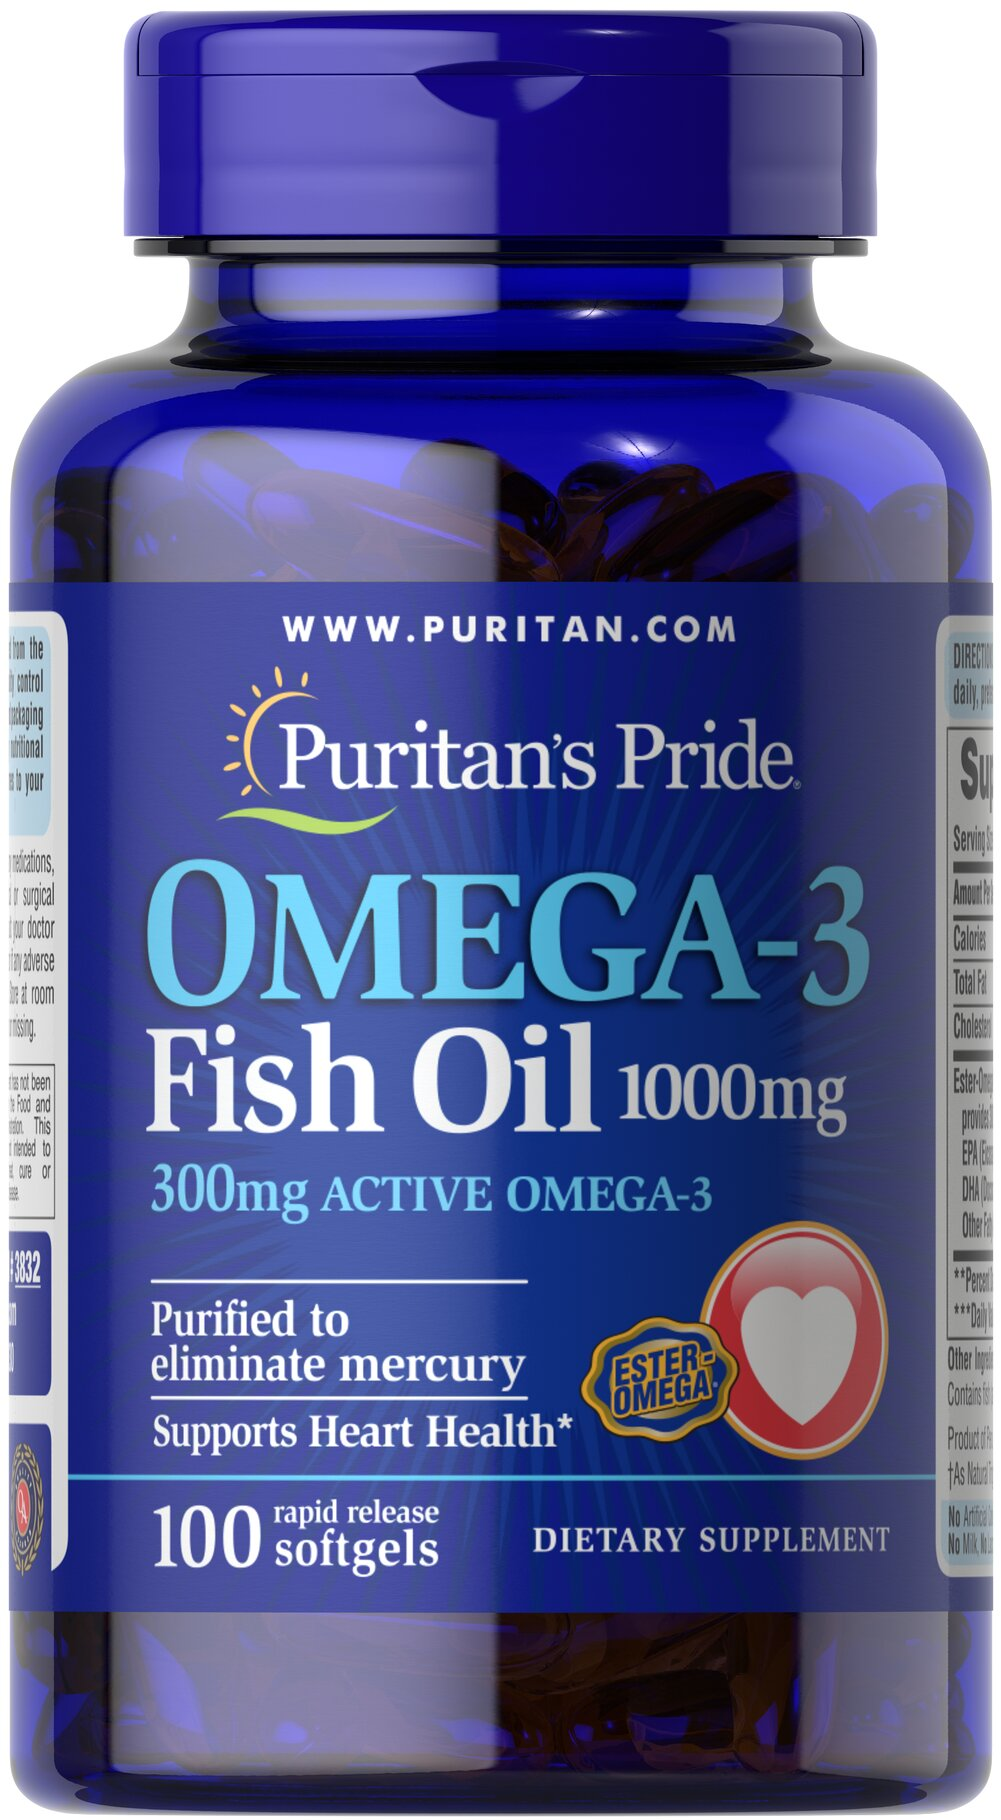 Omega-3 Fish Oil 1000 mg (300 mg Active Omega-3) Thumbnail Alternate Bottle View